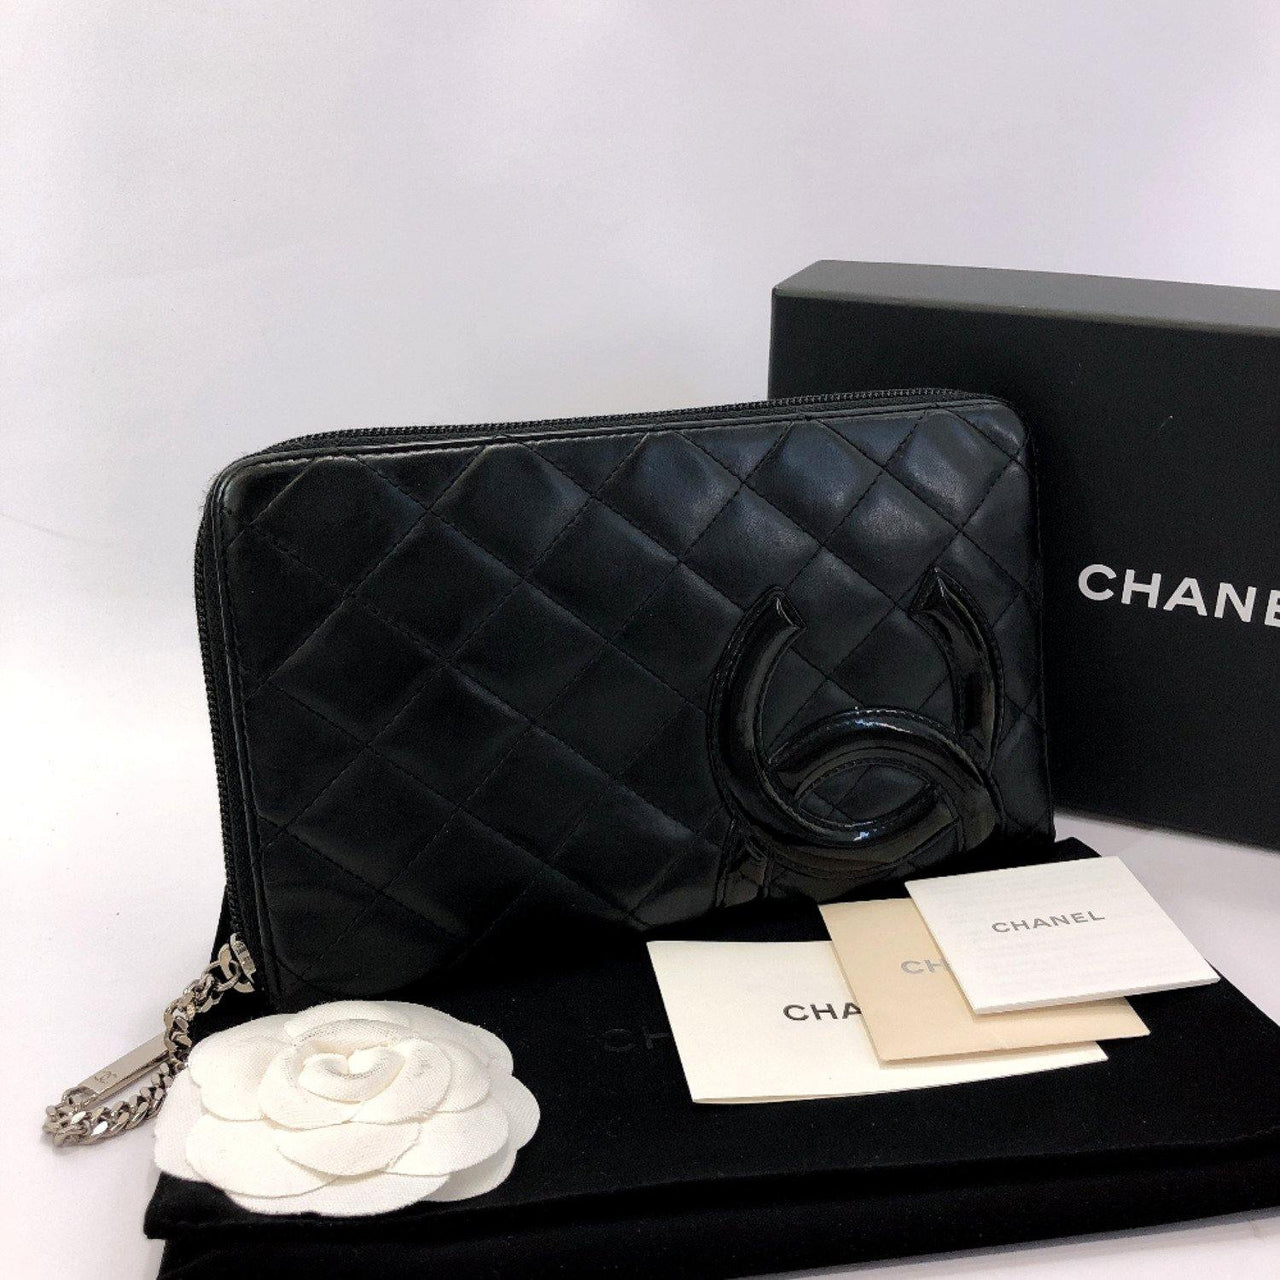 CHANEL purse A26710 Cambon line Matelasse leather black pink Women Used - JP-BRANDS.com